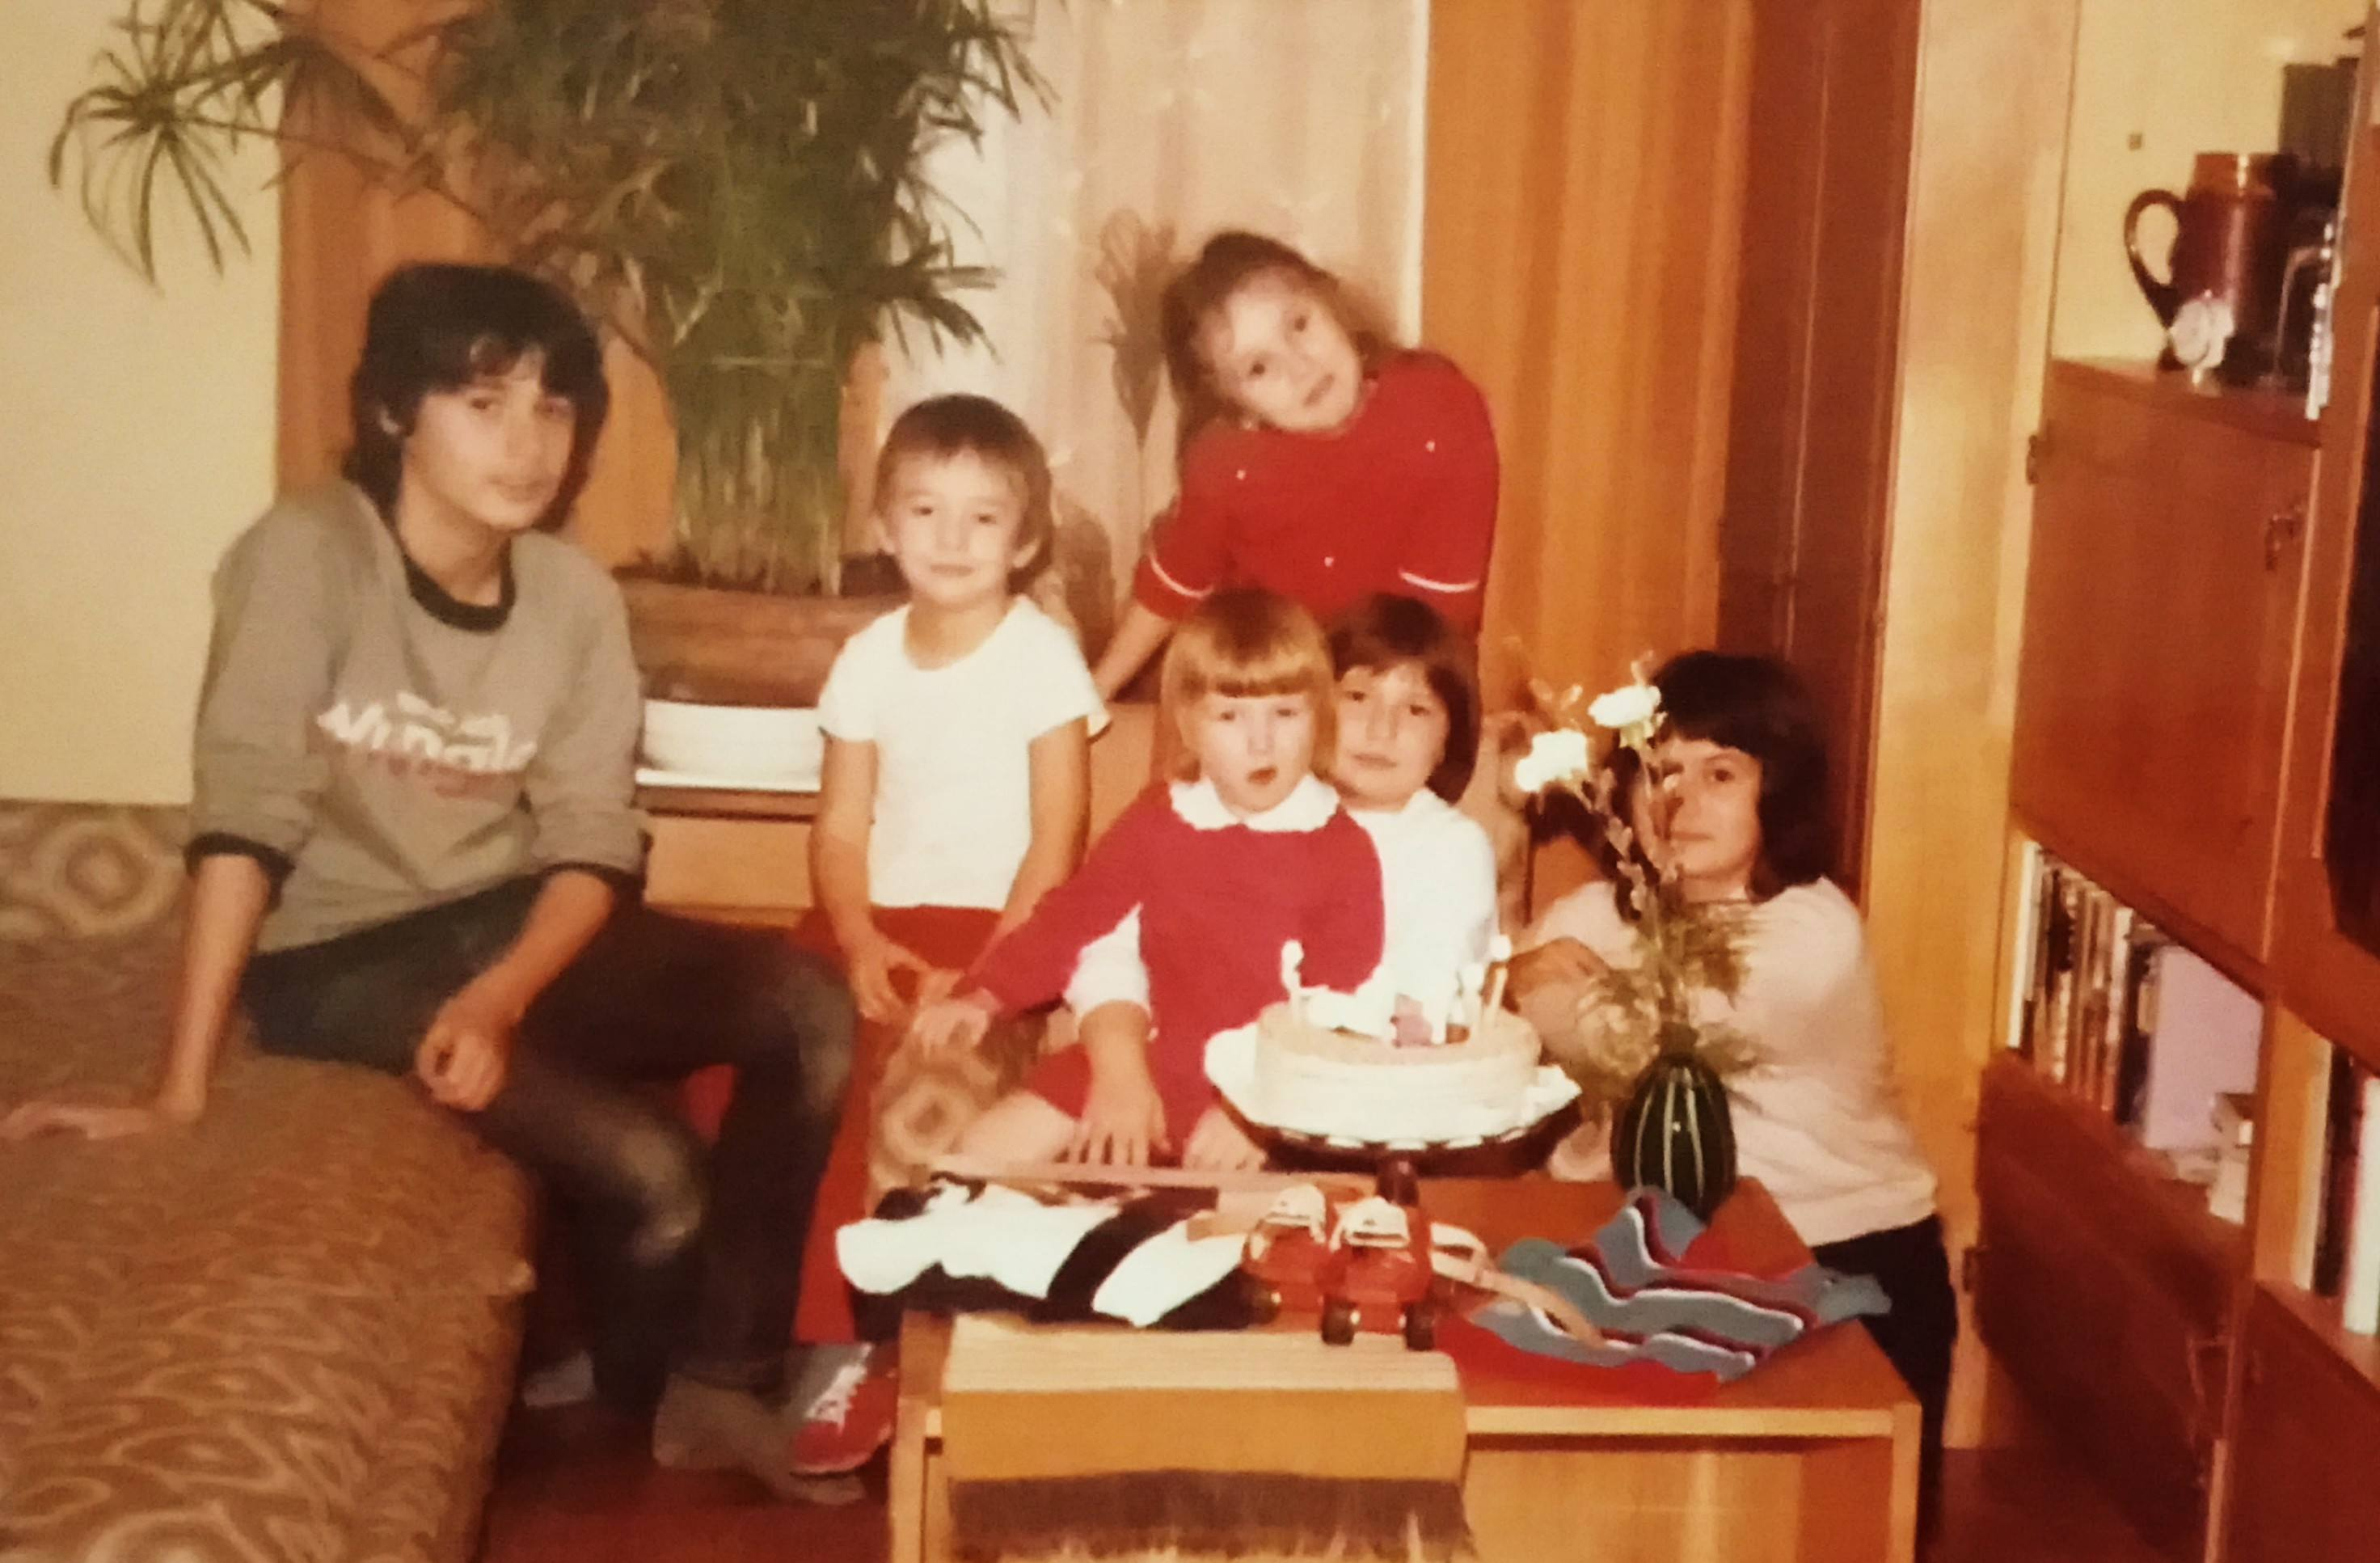 Judit and her cousins in the mid-1980's